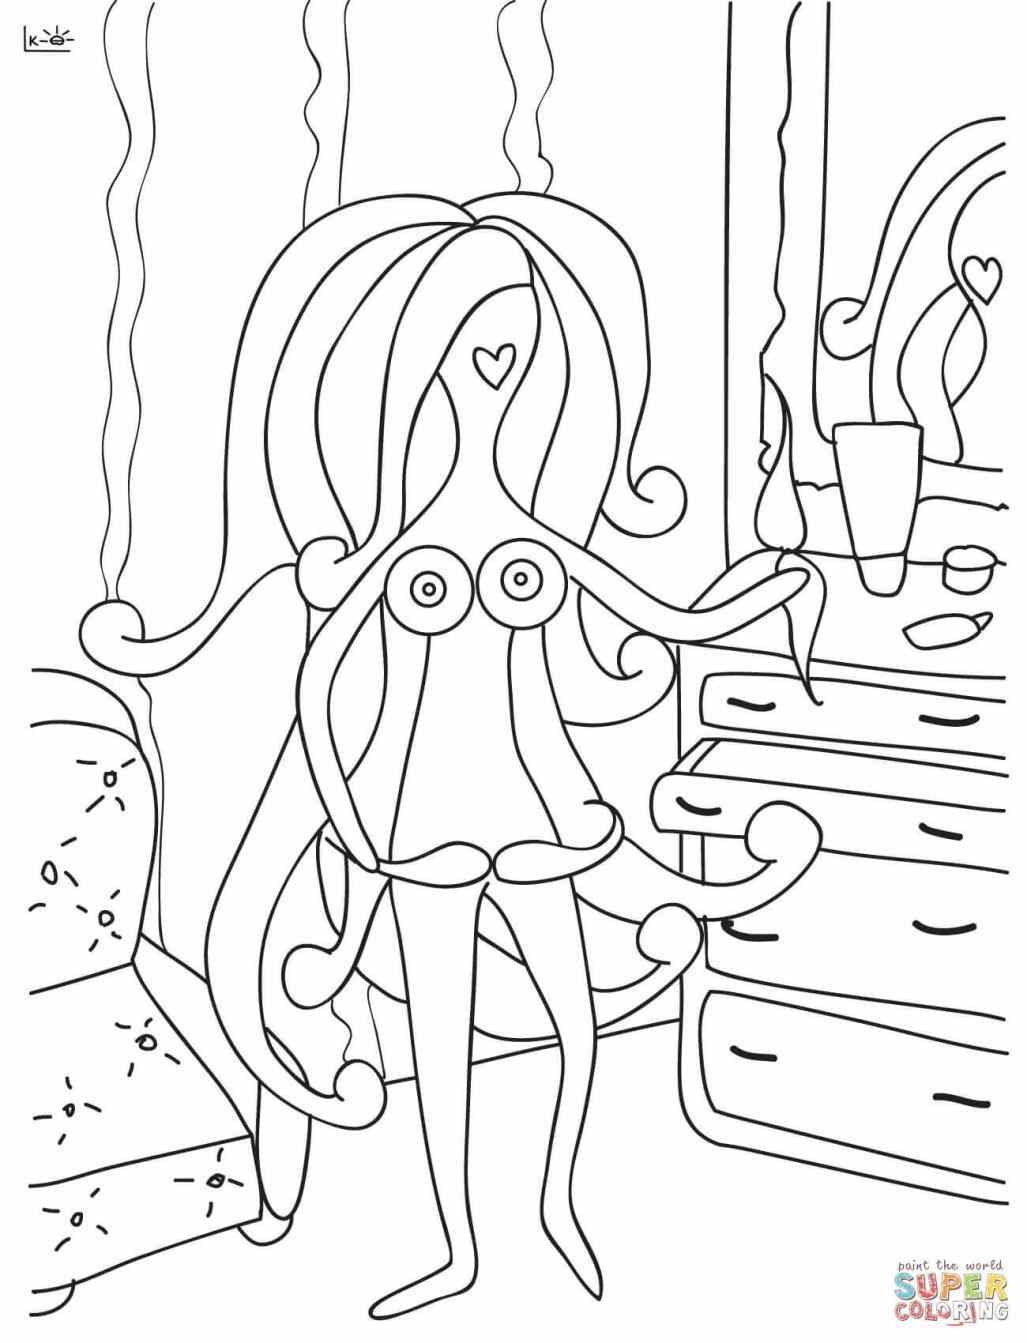 truffula tree coloring page truffula tree drawing at getdrawings free download page tree truffula coloring